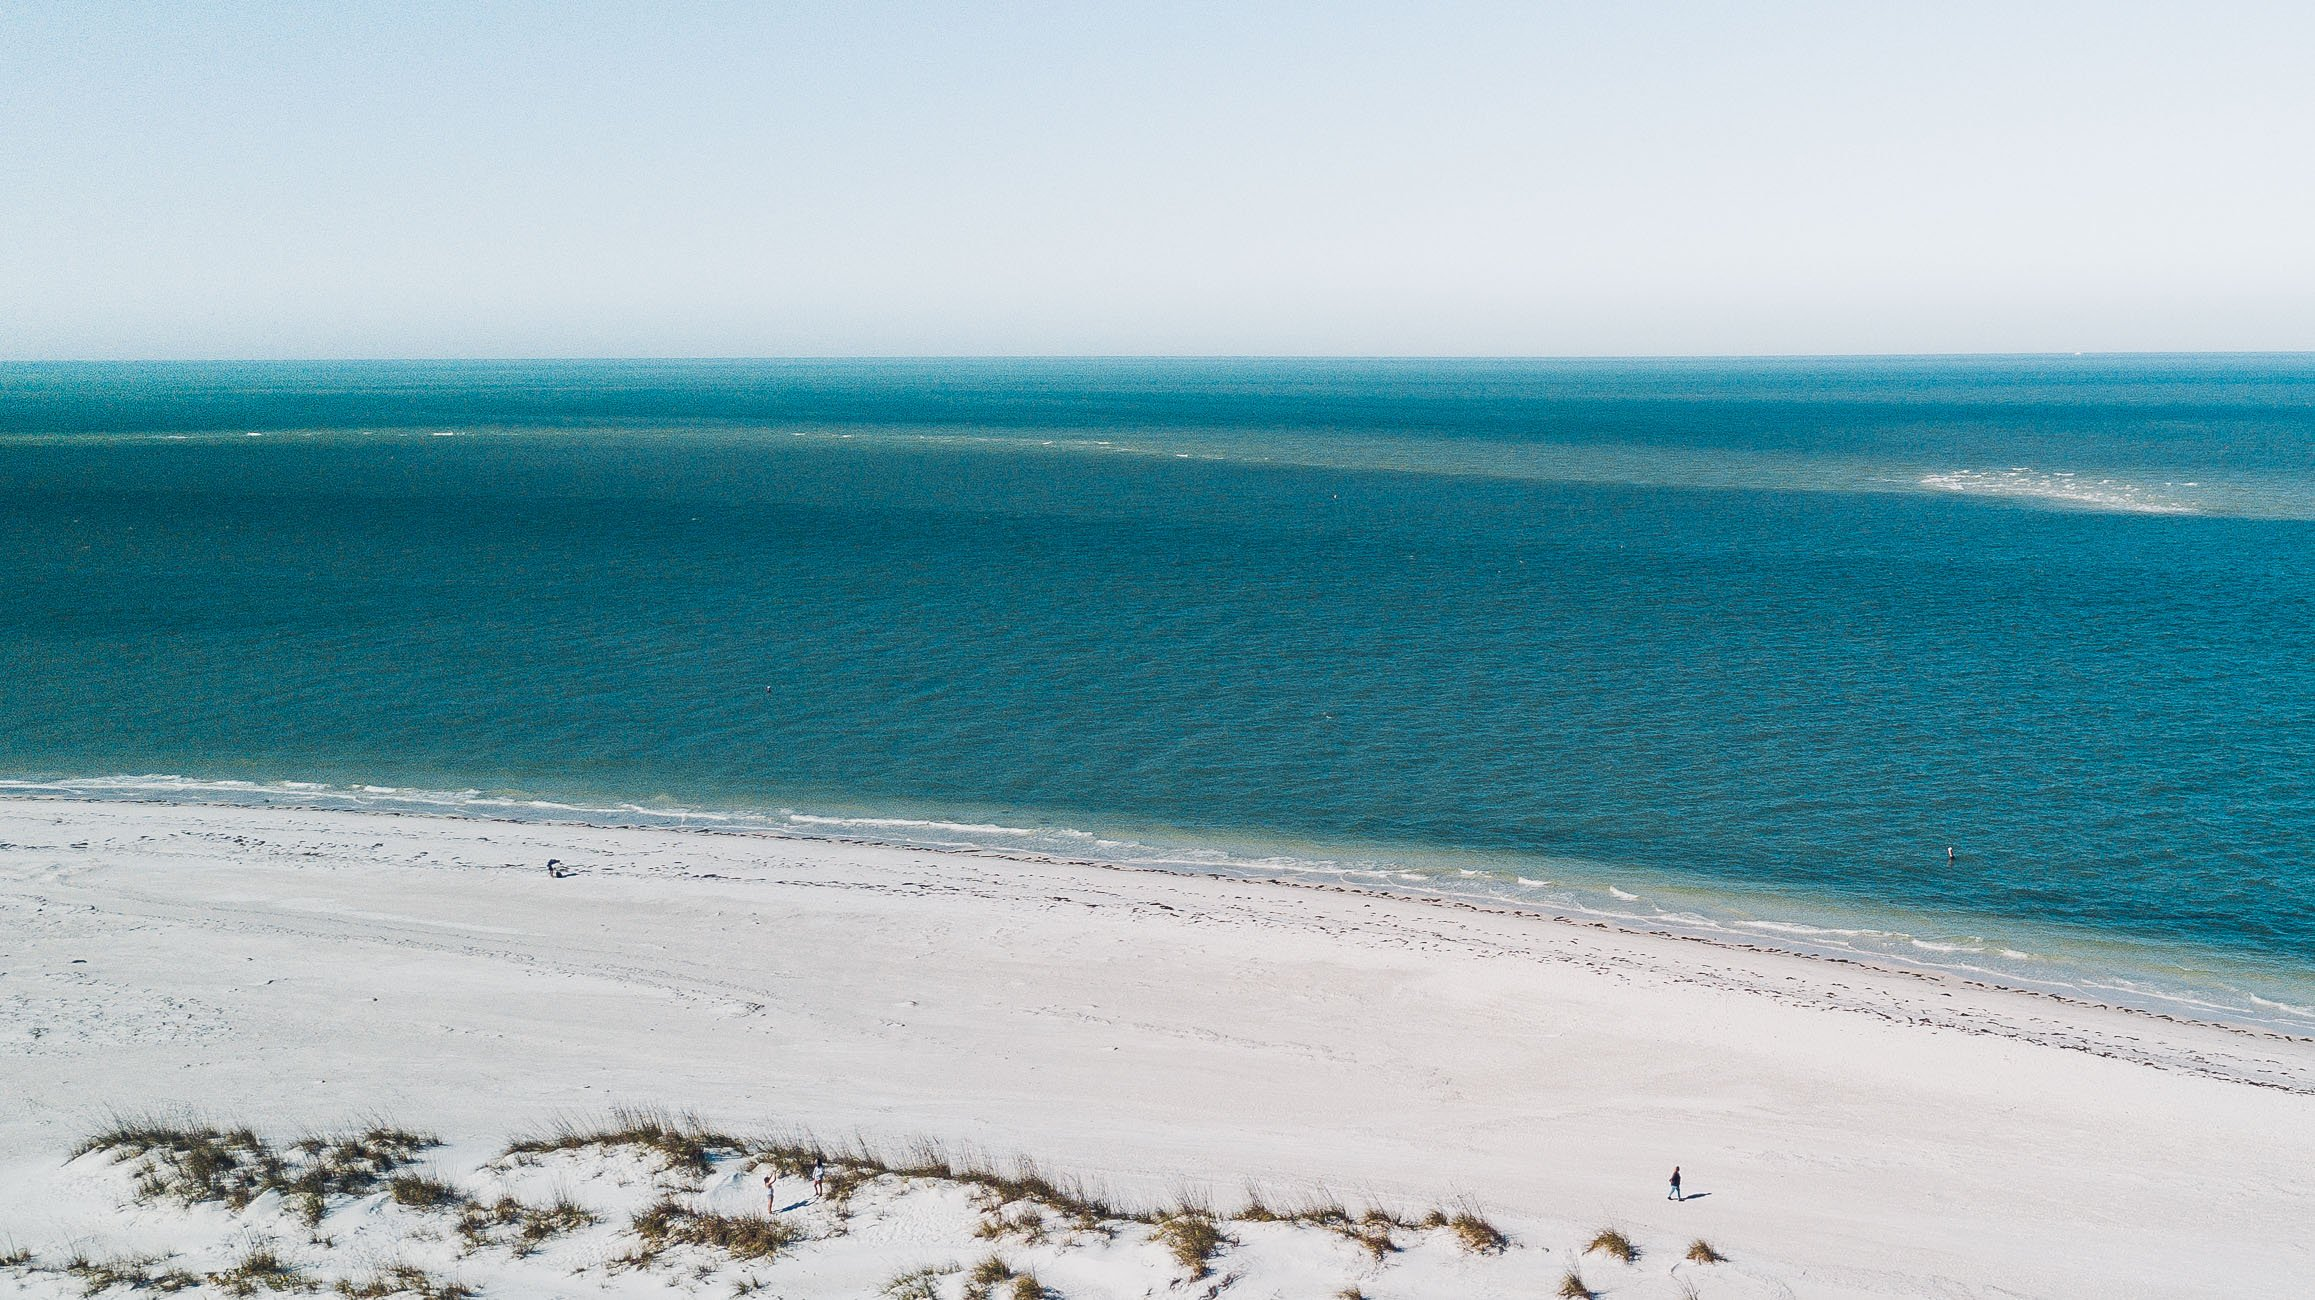 Anna Maria Island Florida as seen from above with a drone